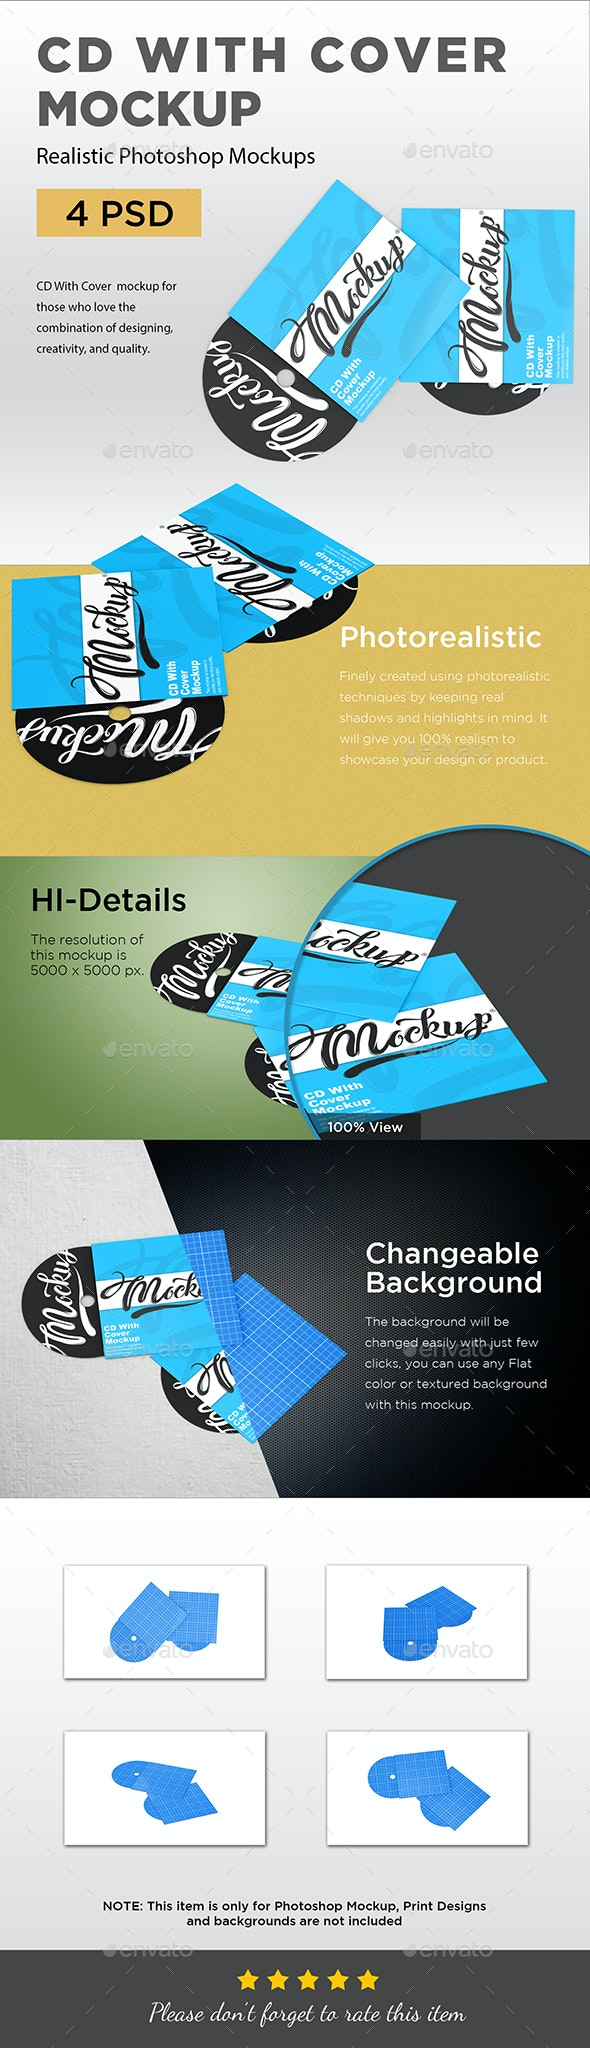 CD With Cover Mockup - Product Mock-Ups Graphics